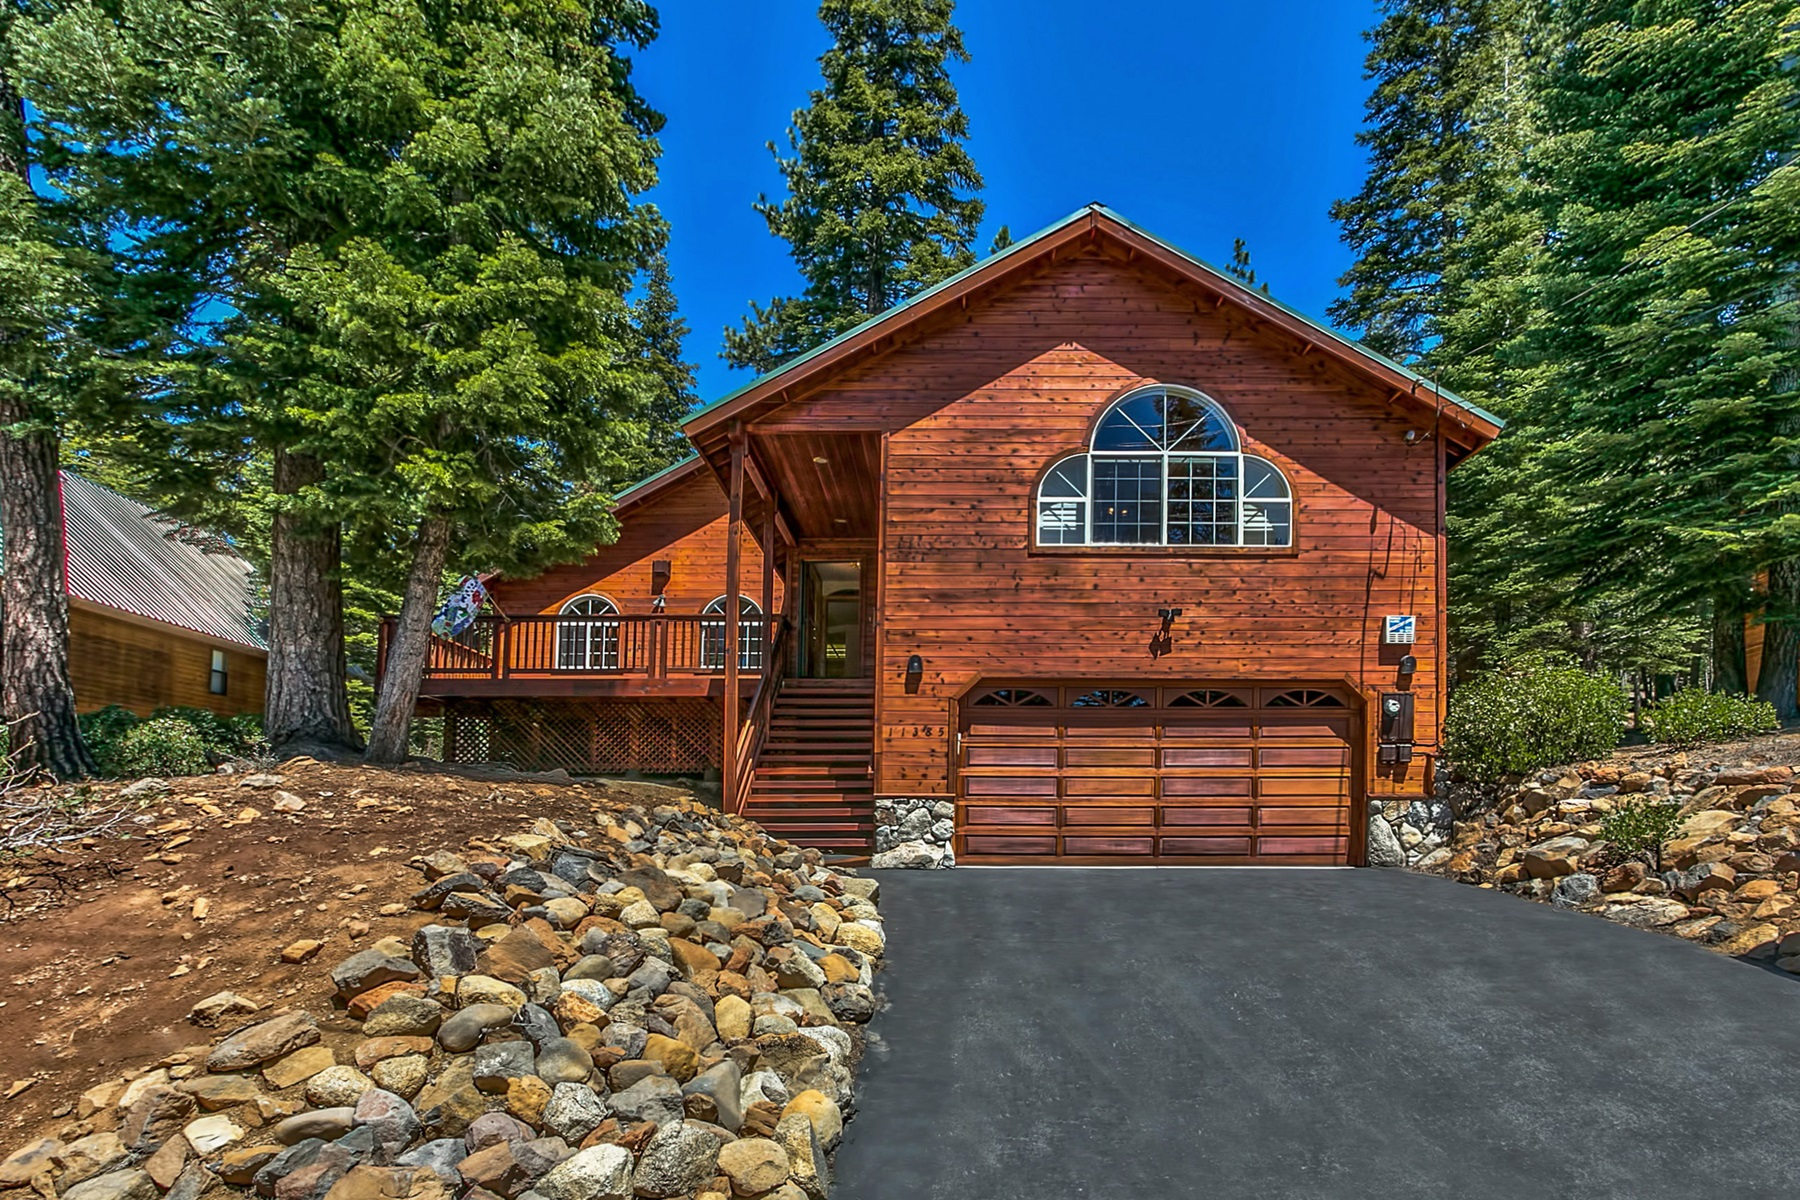 Single Family Home for Active at 11385 Sitzmark Way Truckee, California 96161 United States